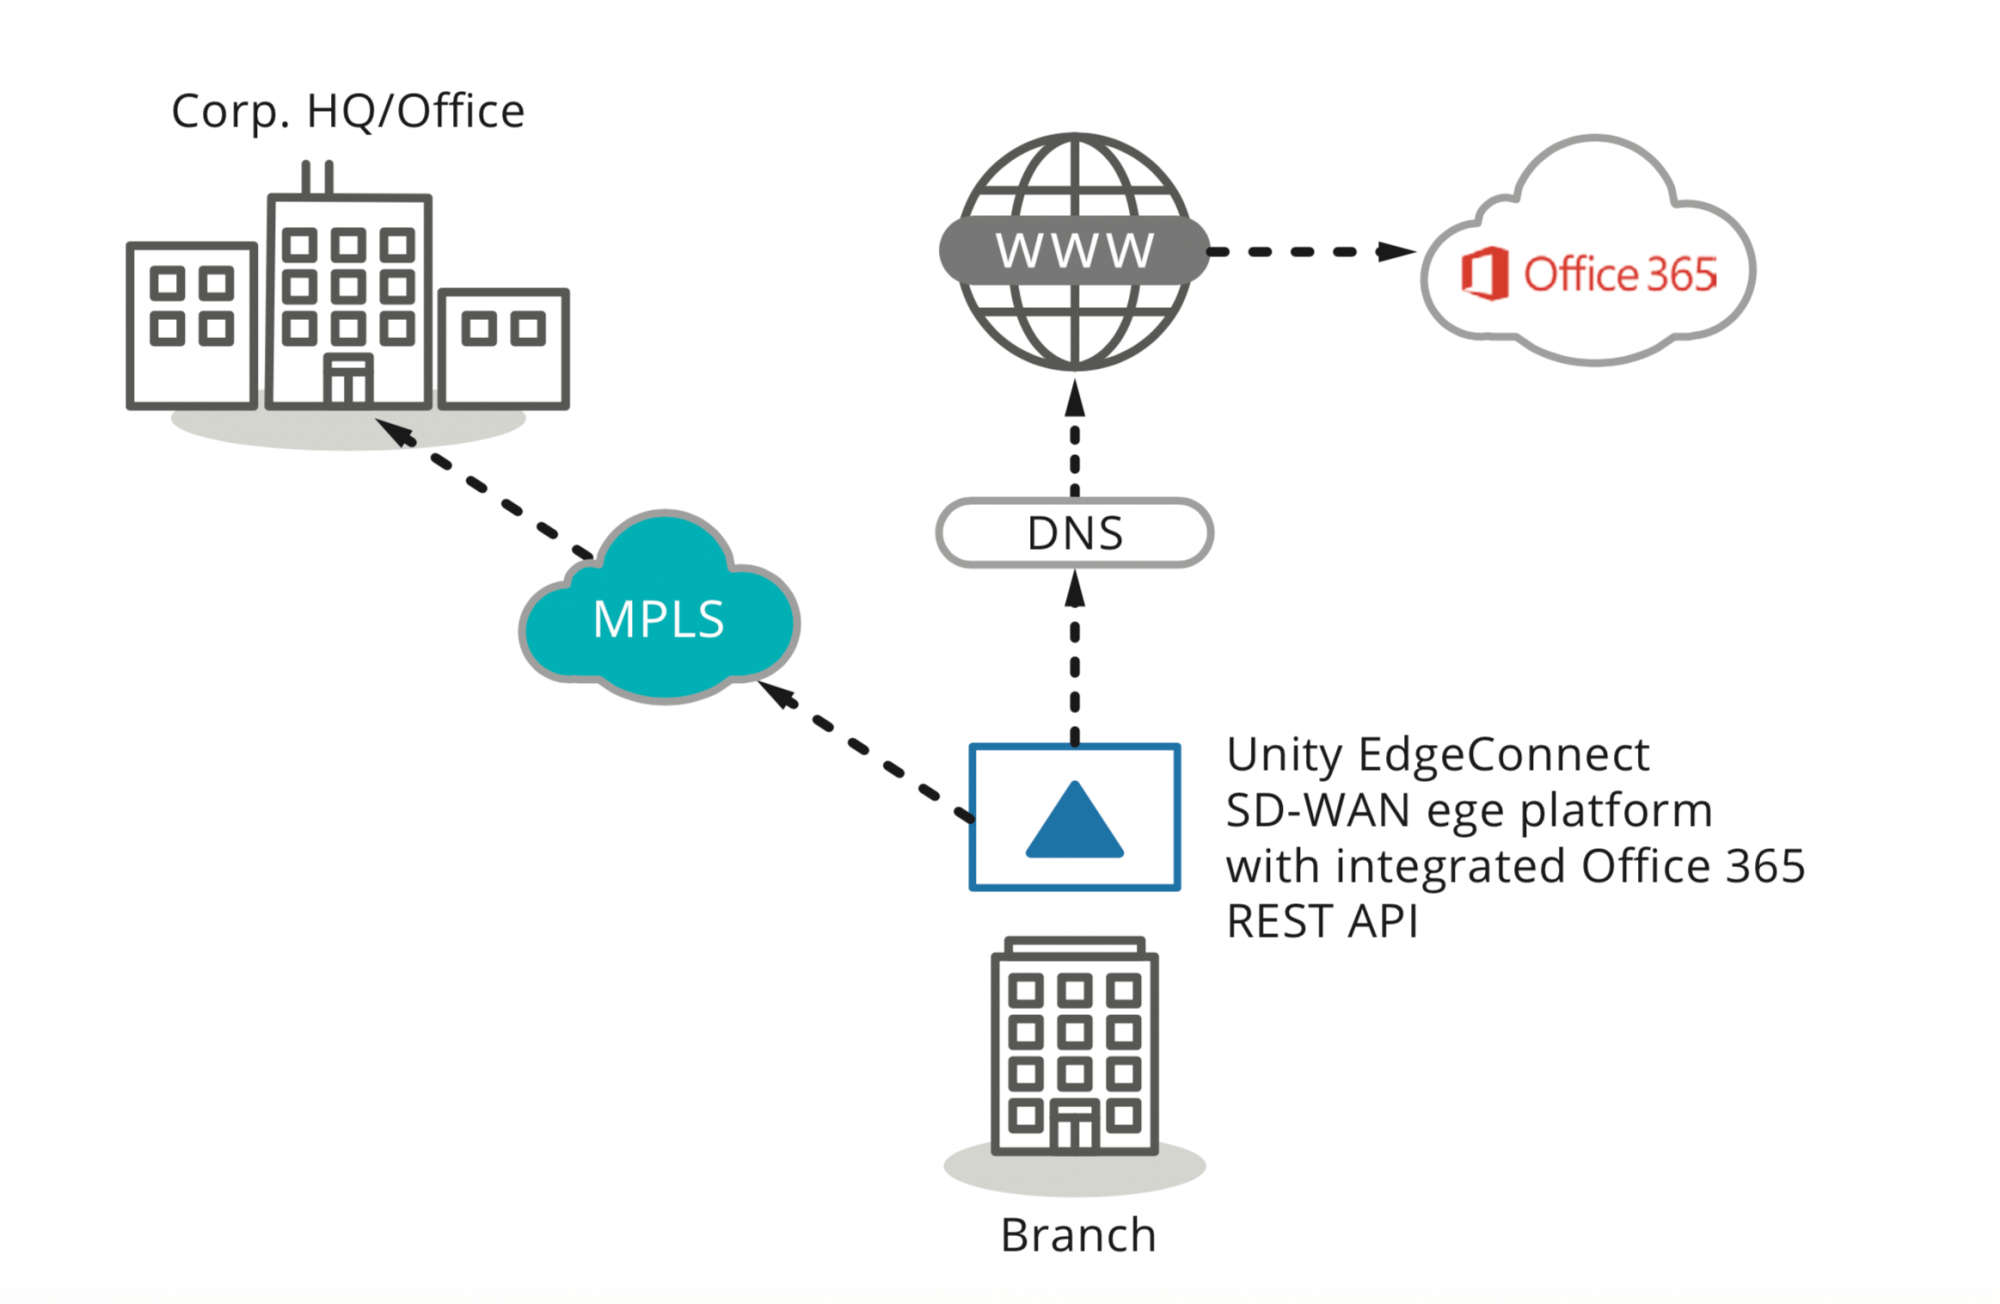 Unity EdgeConnect SD-WAN ege platform with integrated Office 365 REST API